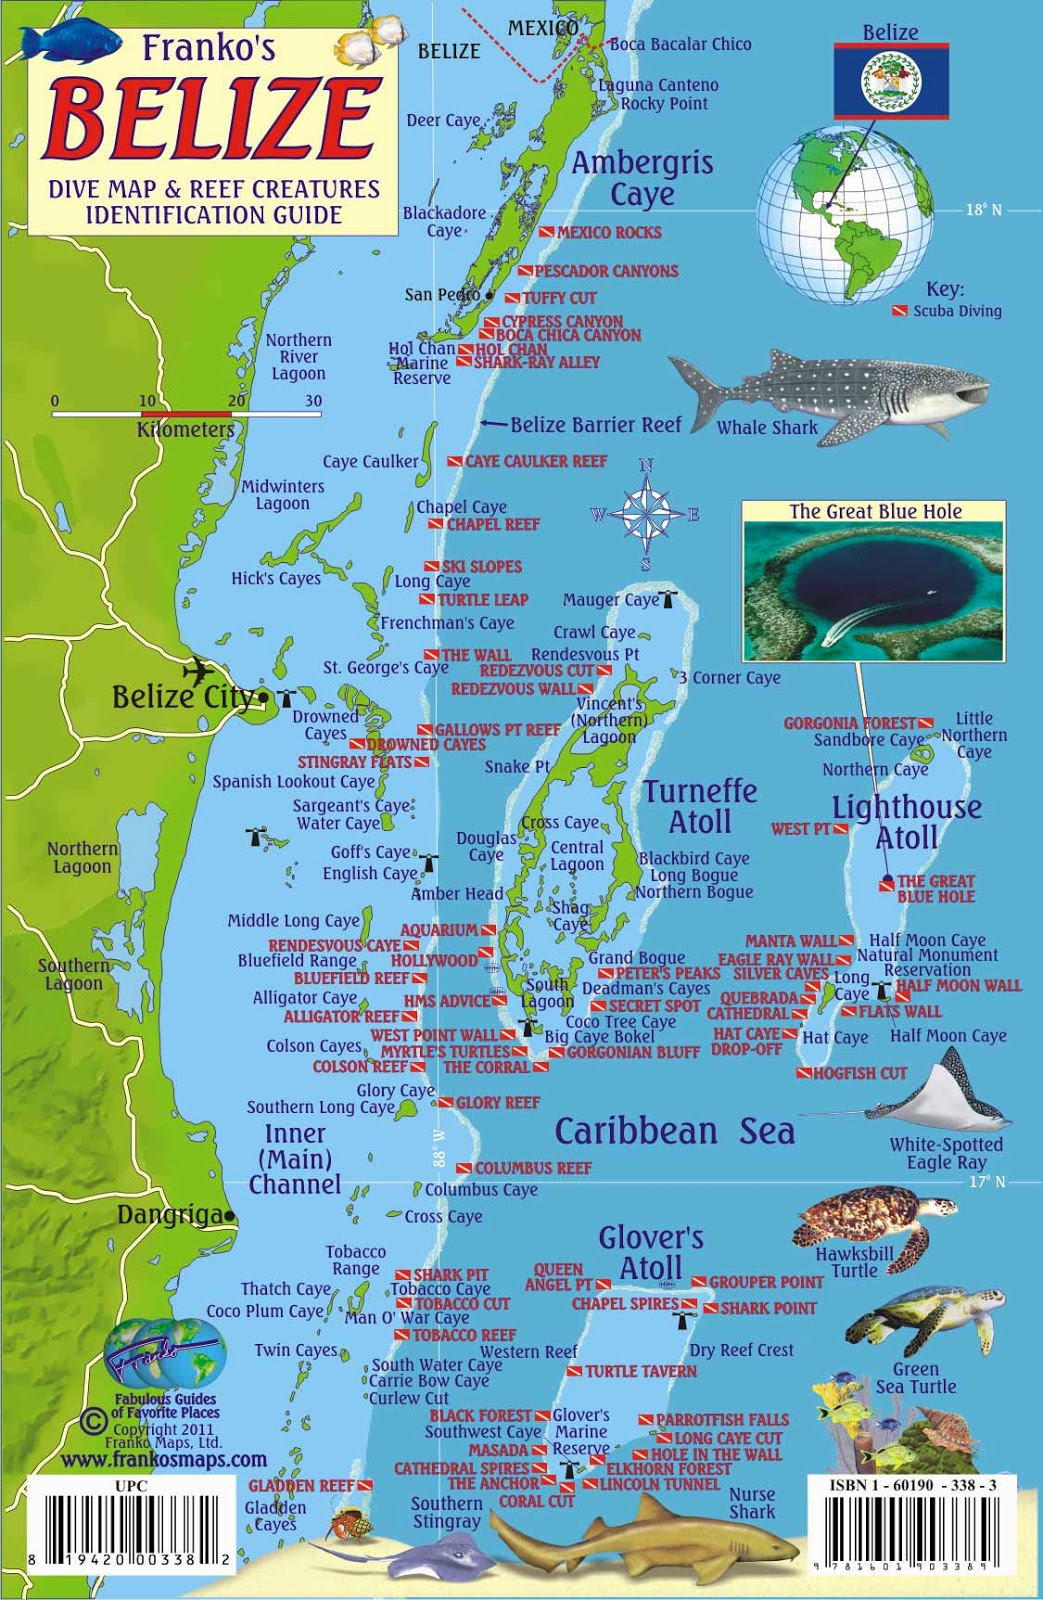 2BCruising: Snorkeling In The Caribbean And The Second